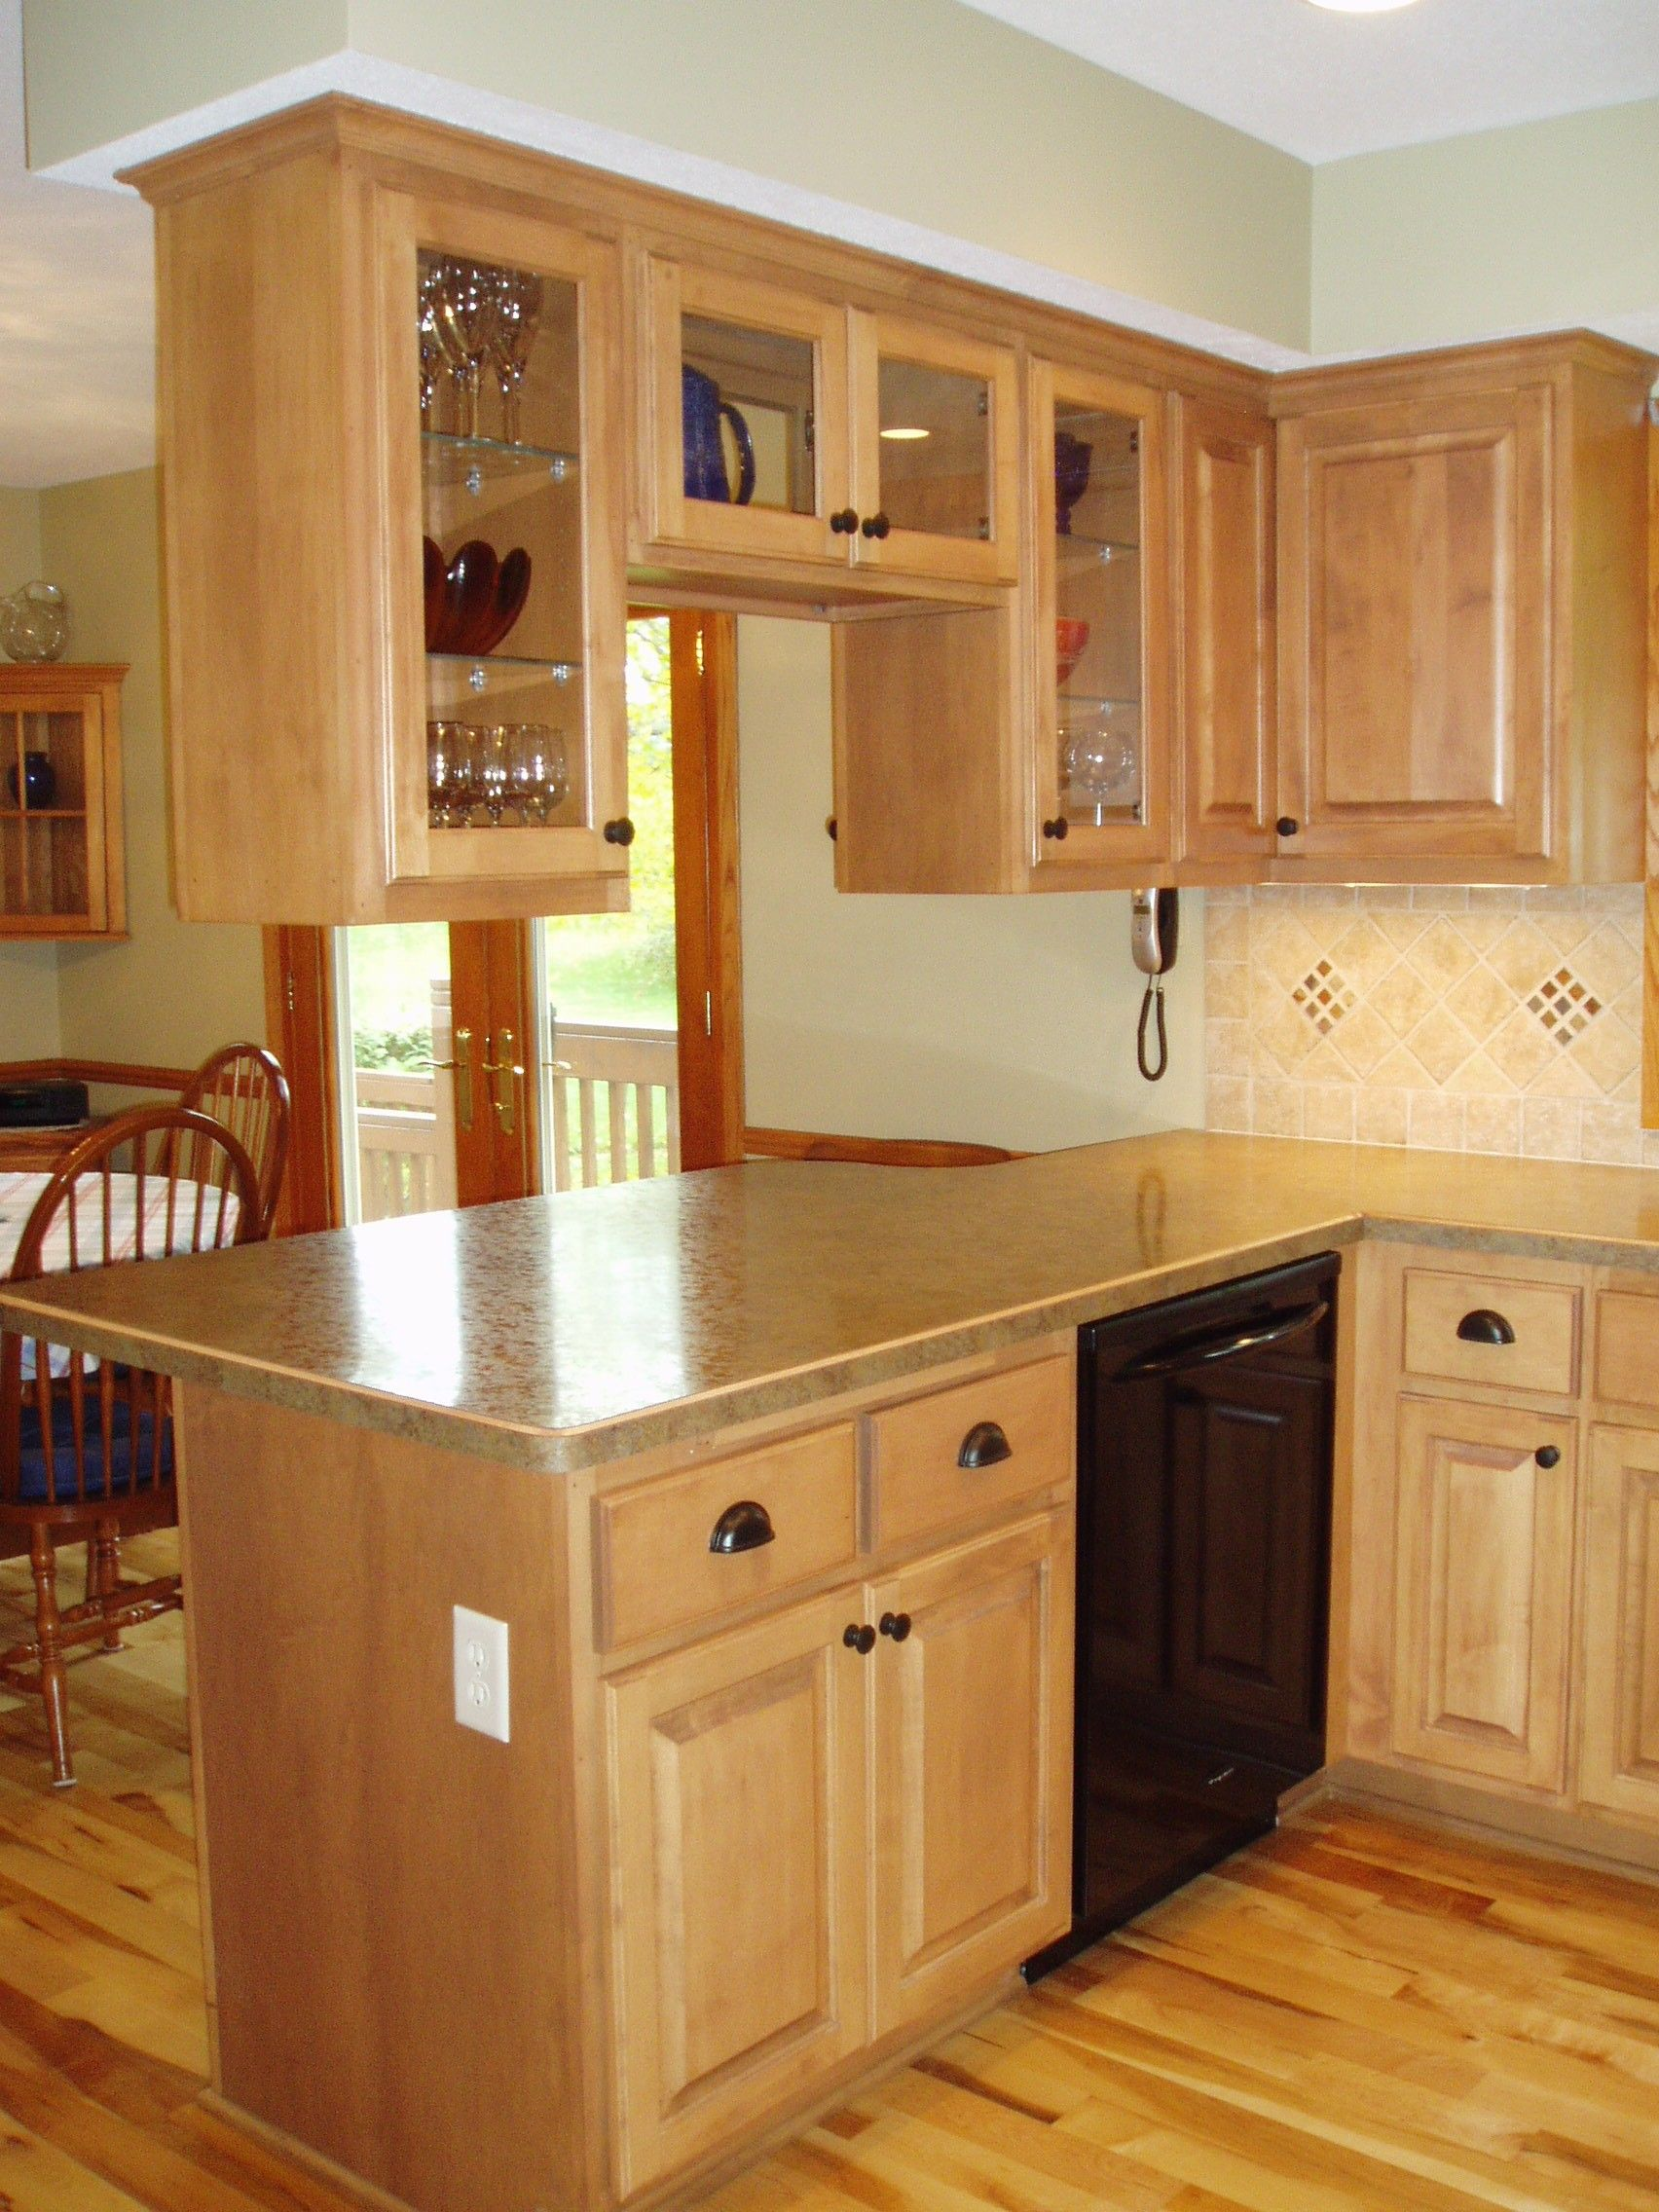 Stain & Clear Finish on Maple Cabinets. | cosina | Pinterest ...